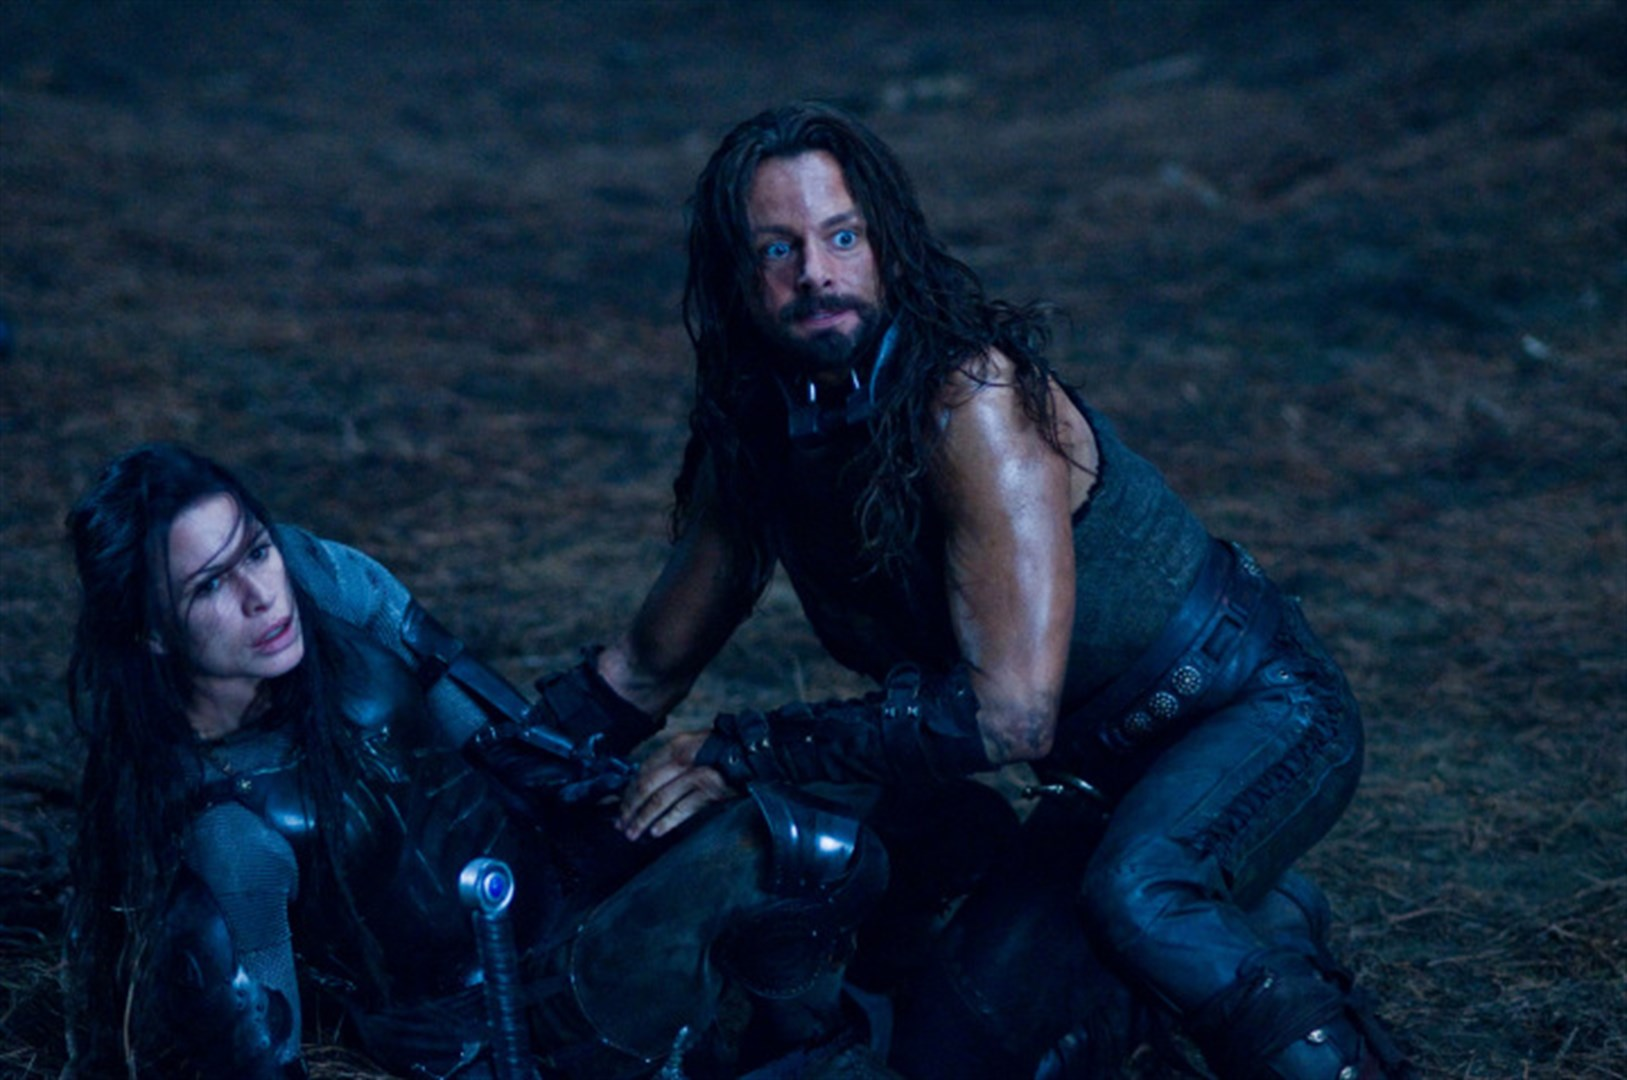 Sonja (Rhona Mitra) and Lucian (Michael Sheen) in Underworld: Rise of the Lycans (2005)